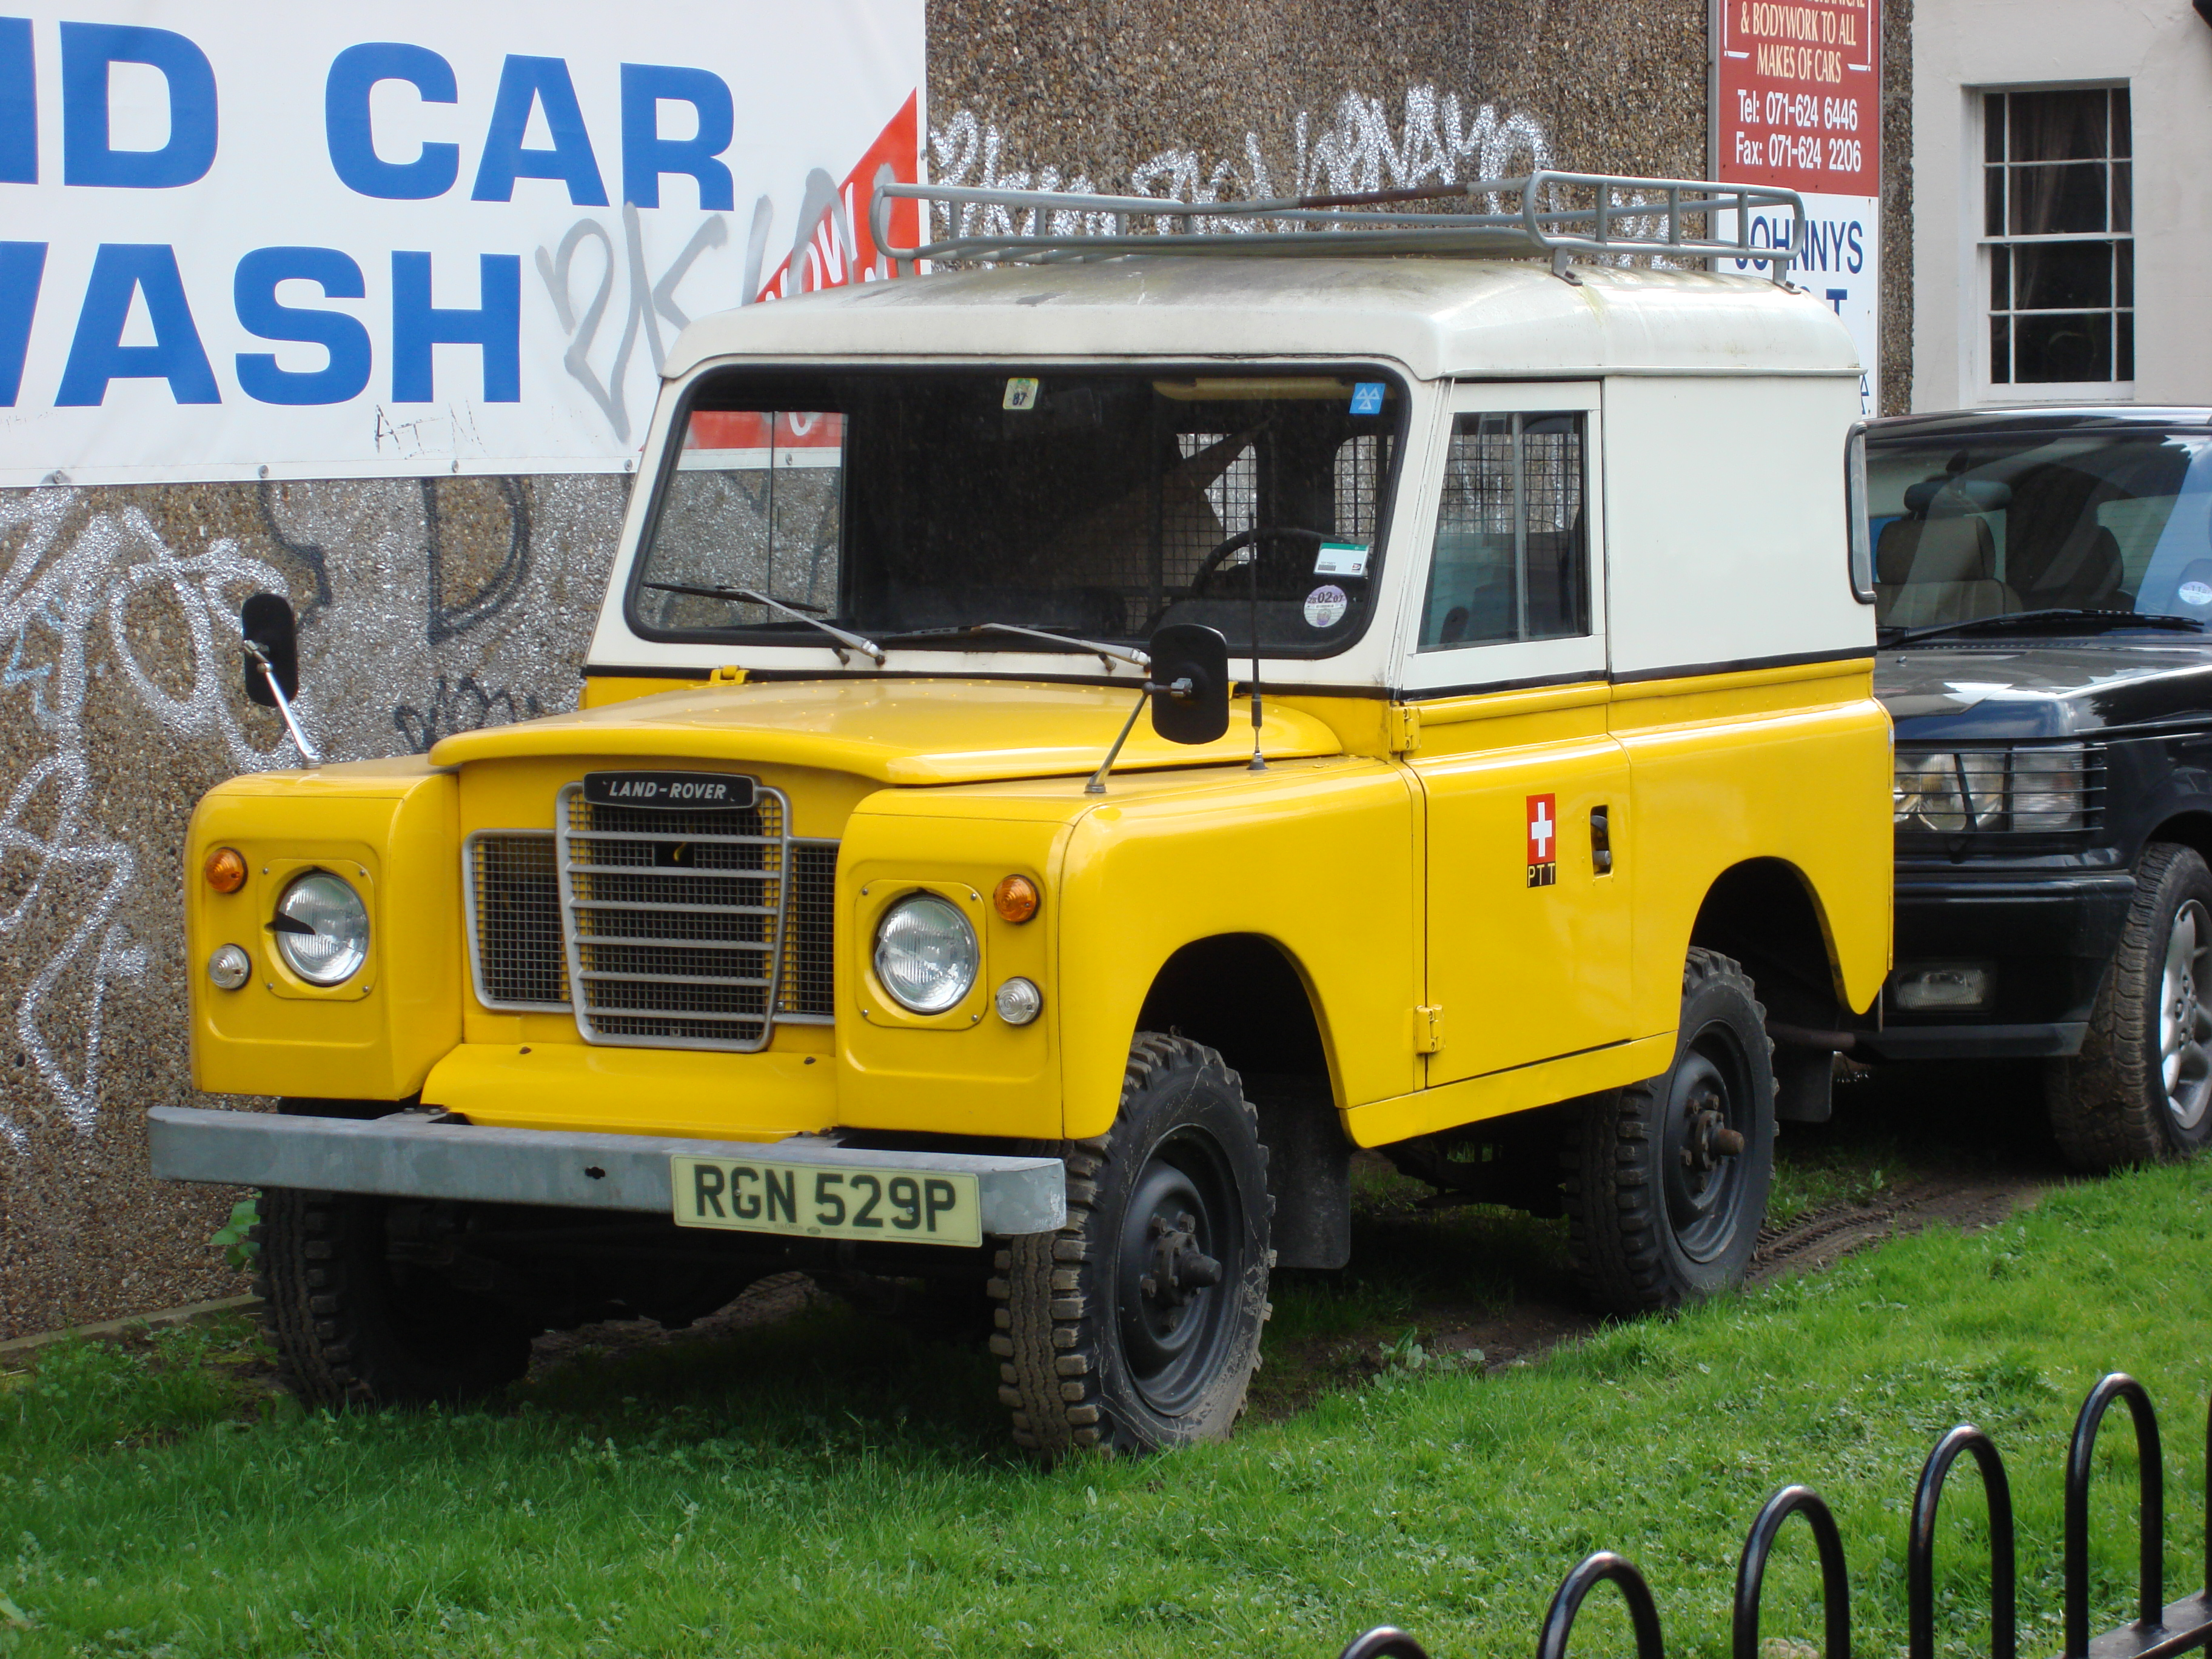 File:Yellow Land Rover Defender.jpg - Wikimedia Commons